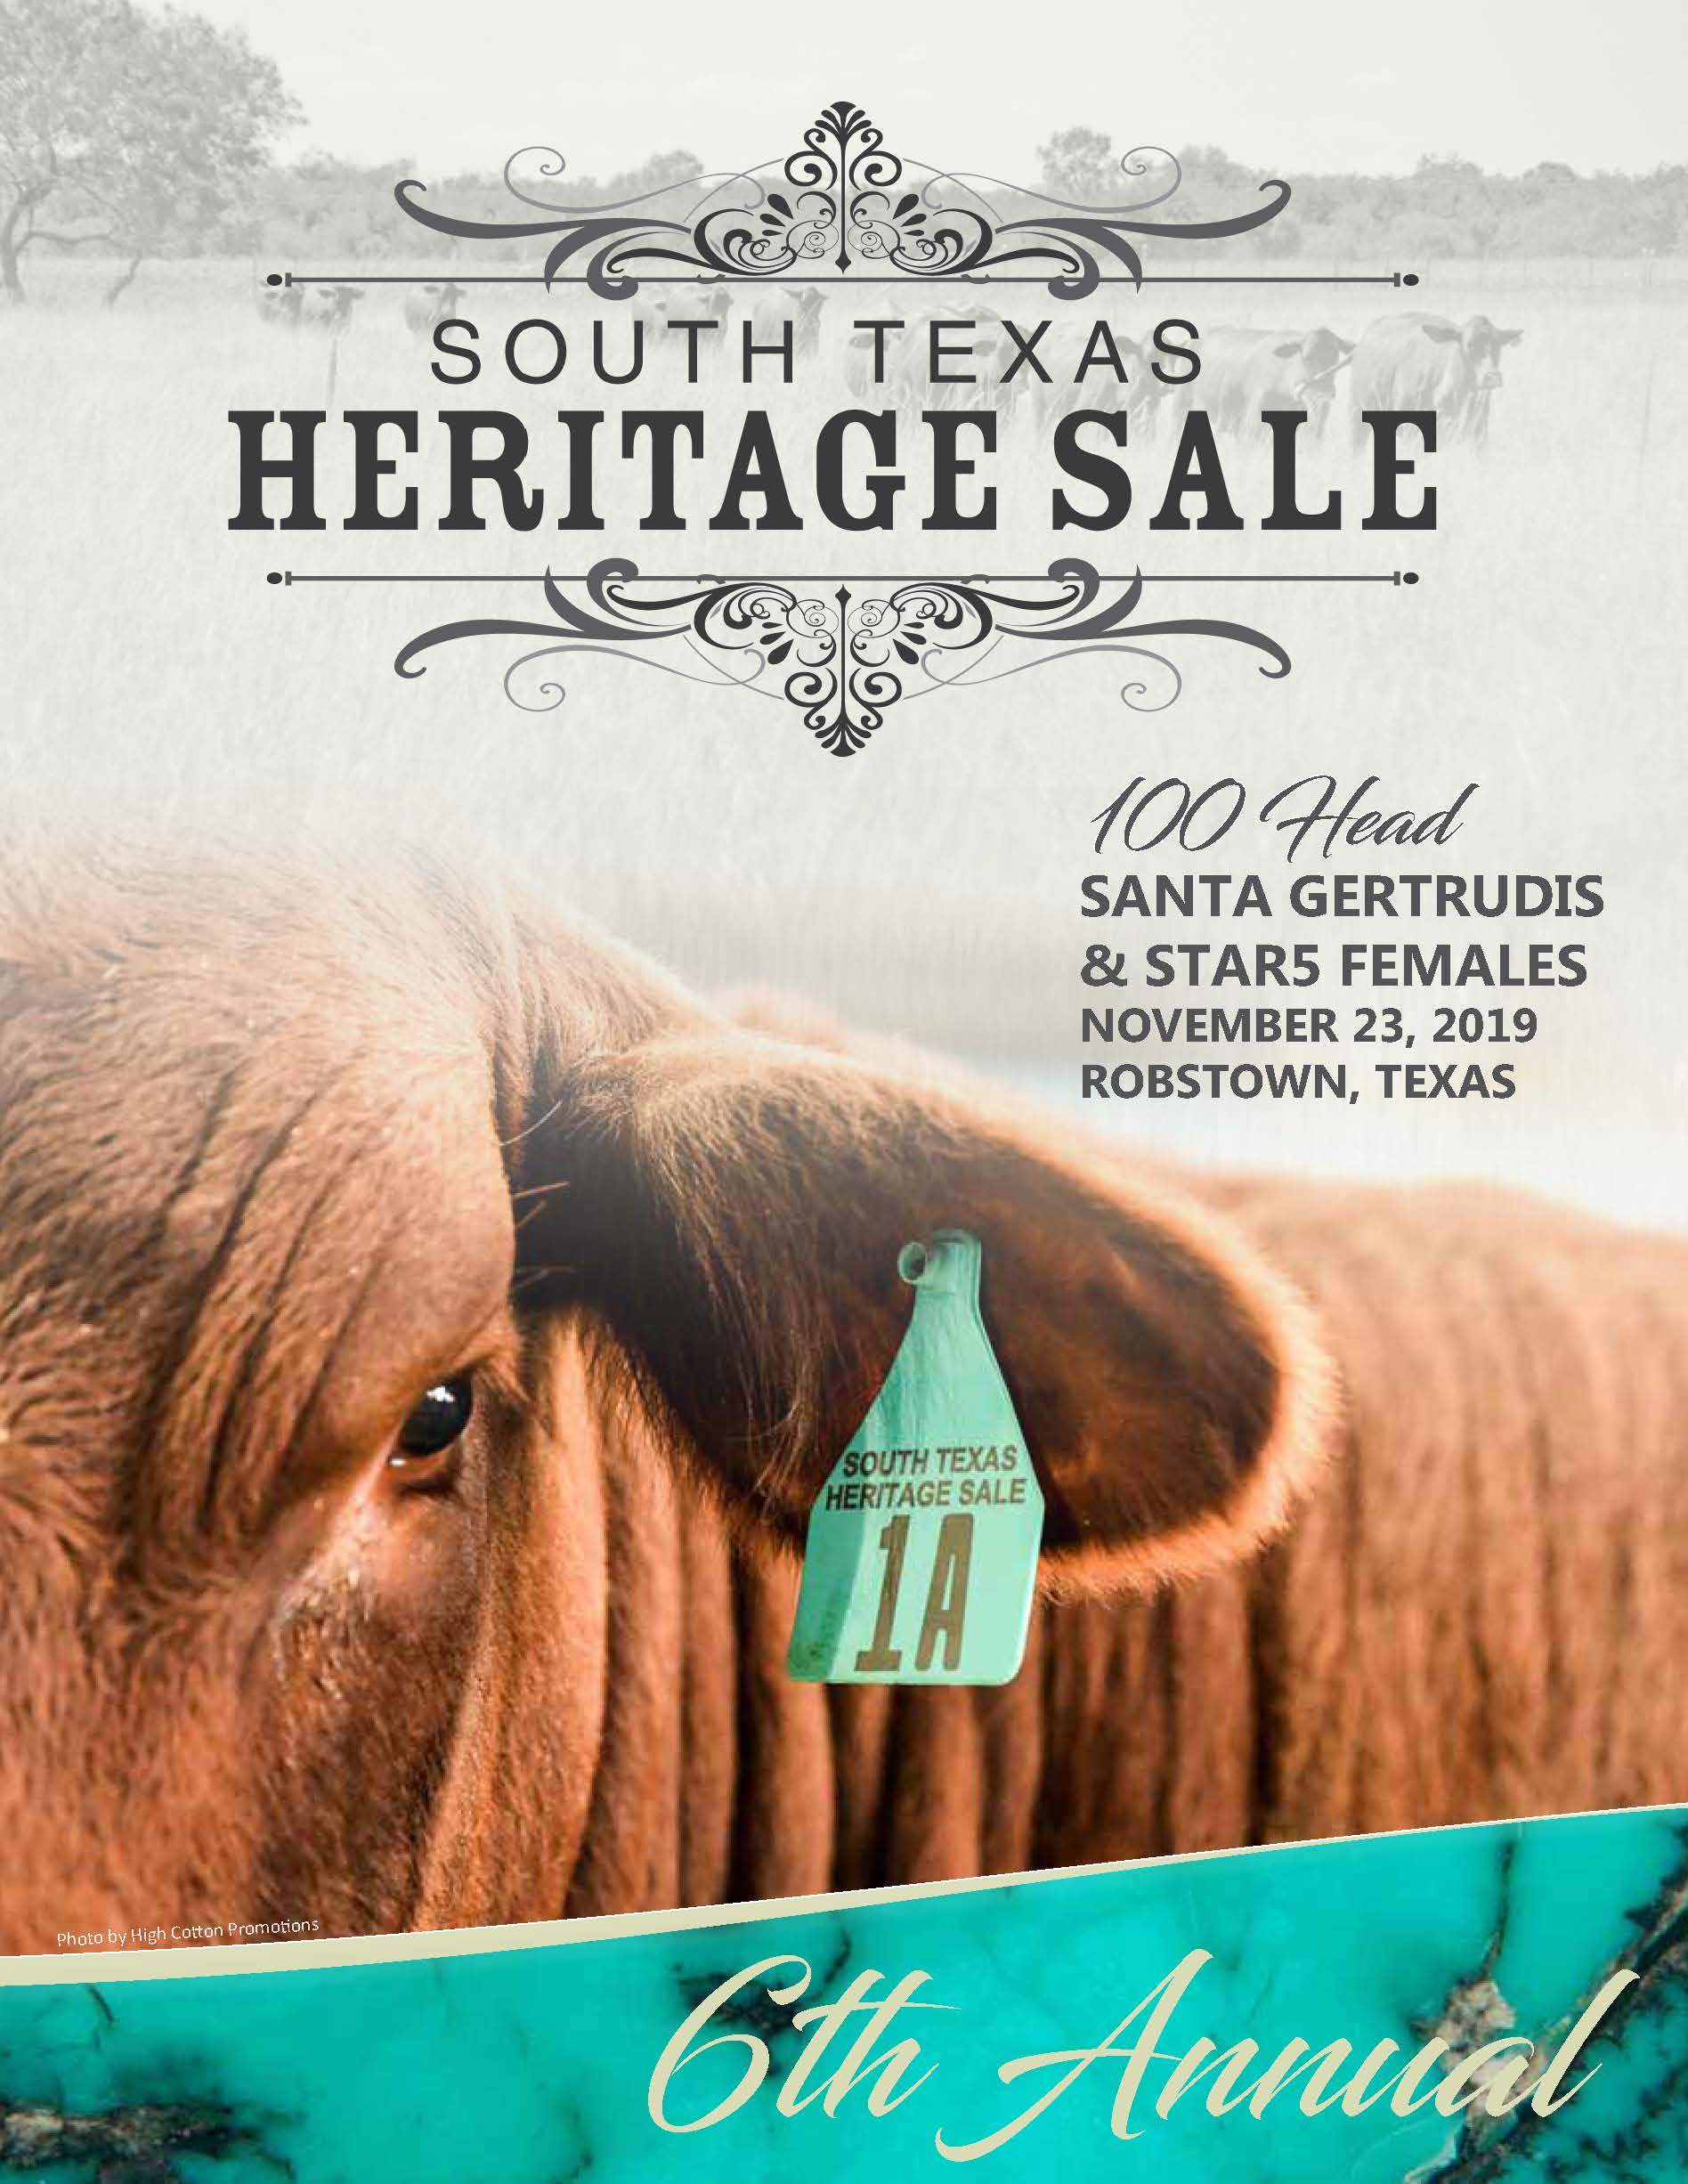 South Texas Heritage Sale 2019